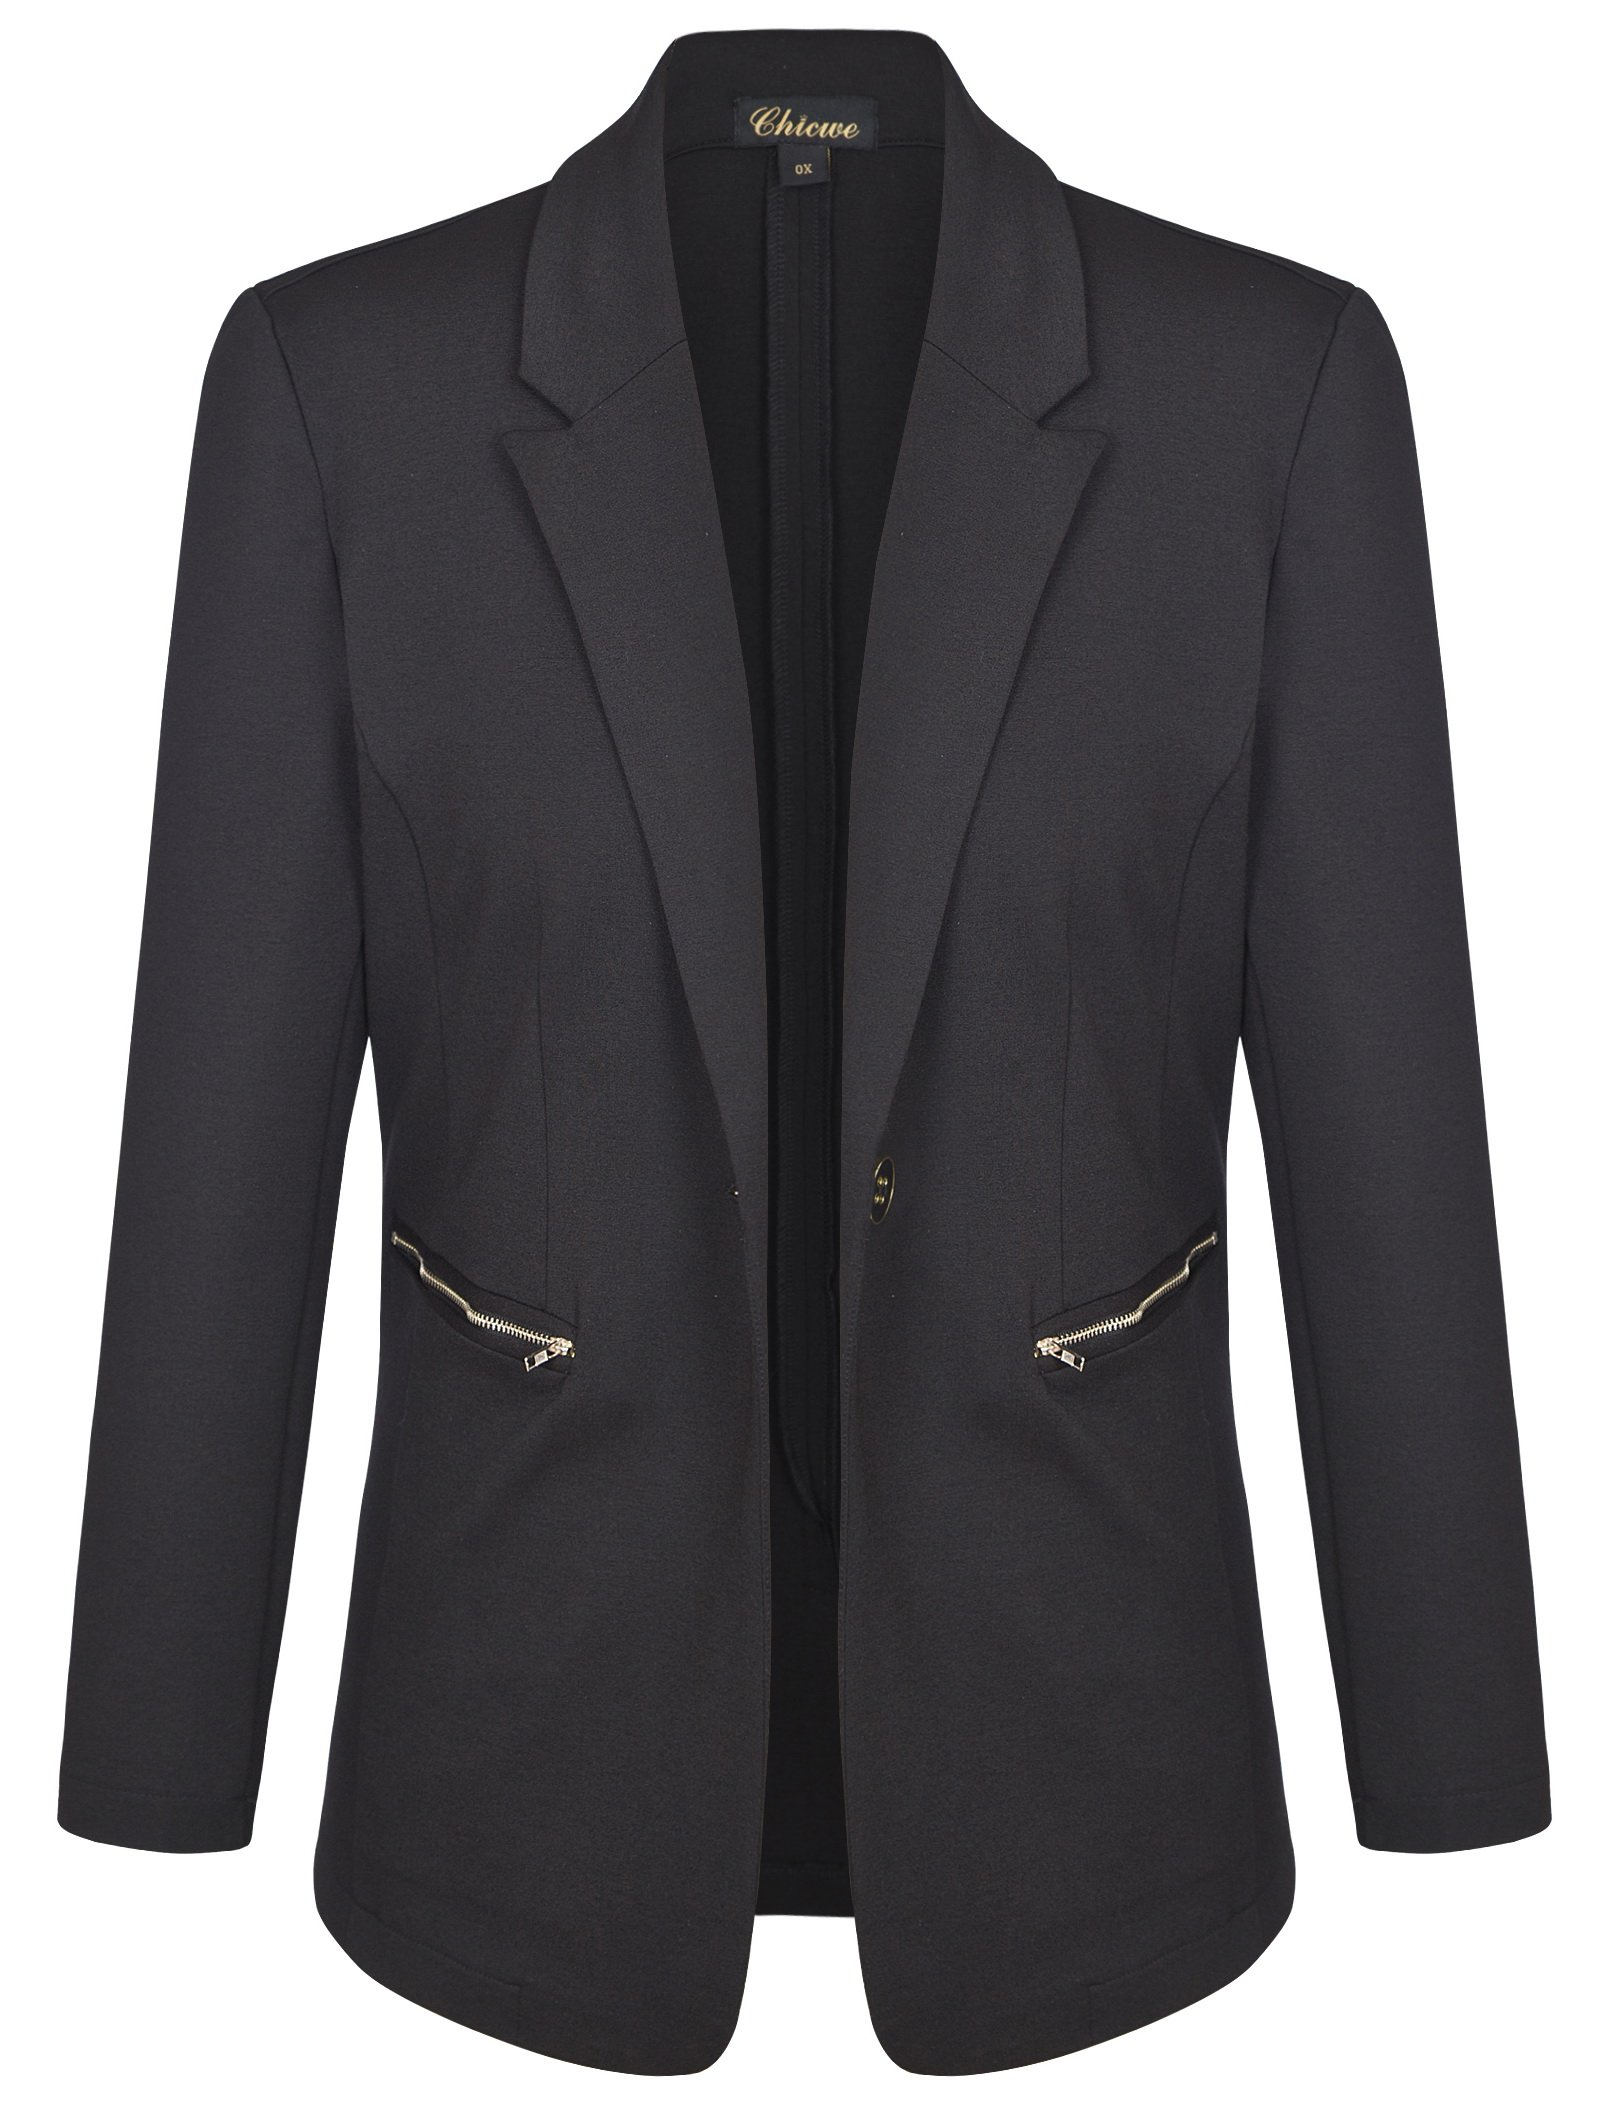 Chicwe Women's Plus Size Stretch Solid Work Blazer Suit Jacket with Metal Zipper 2X by Chicwe